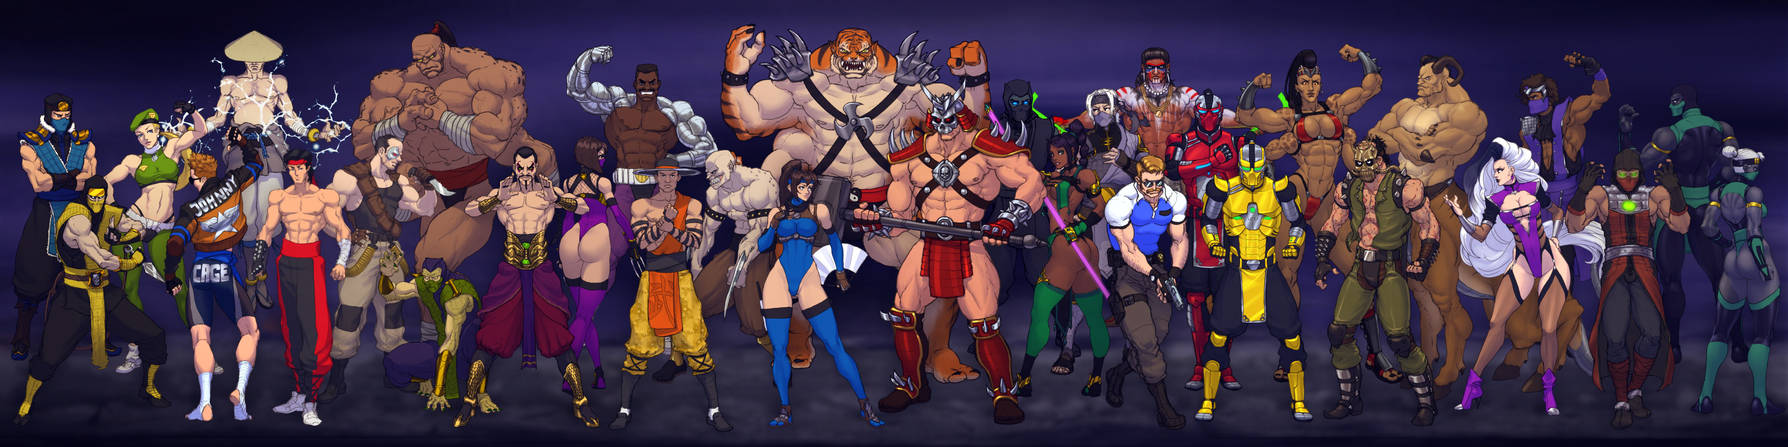 The Kombat Kontinues in 2019: Part I